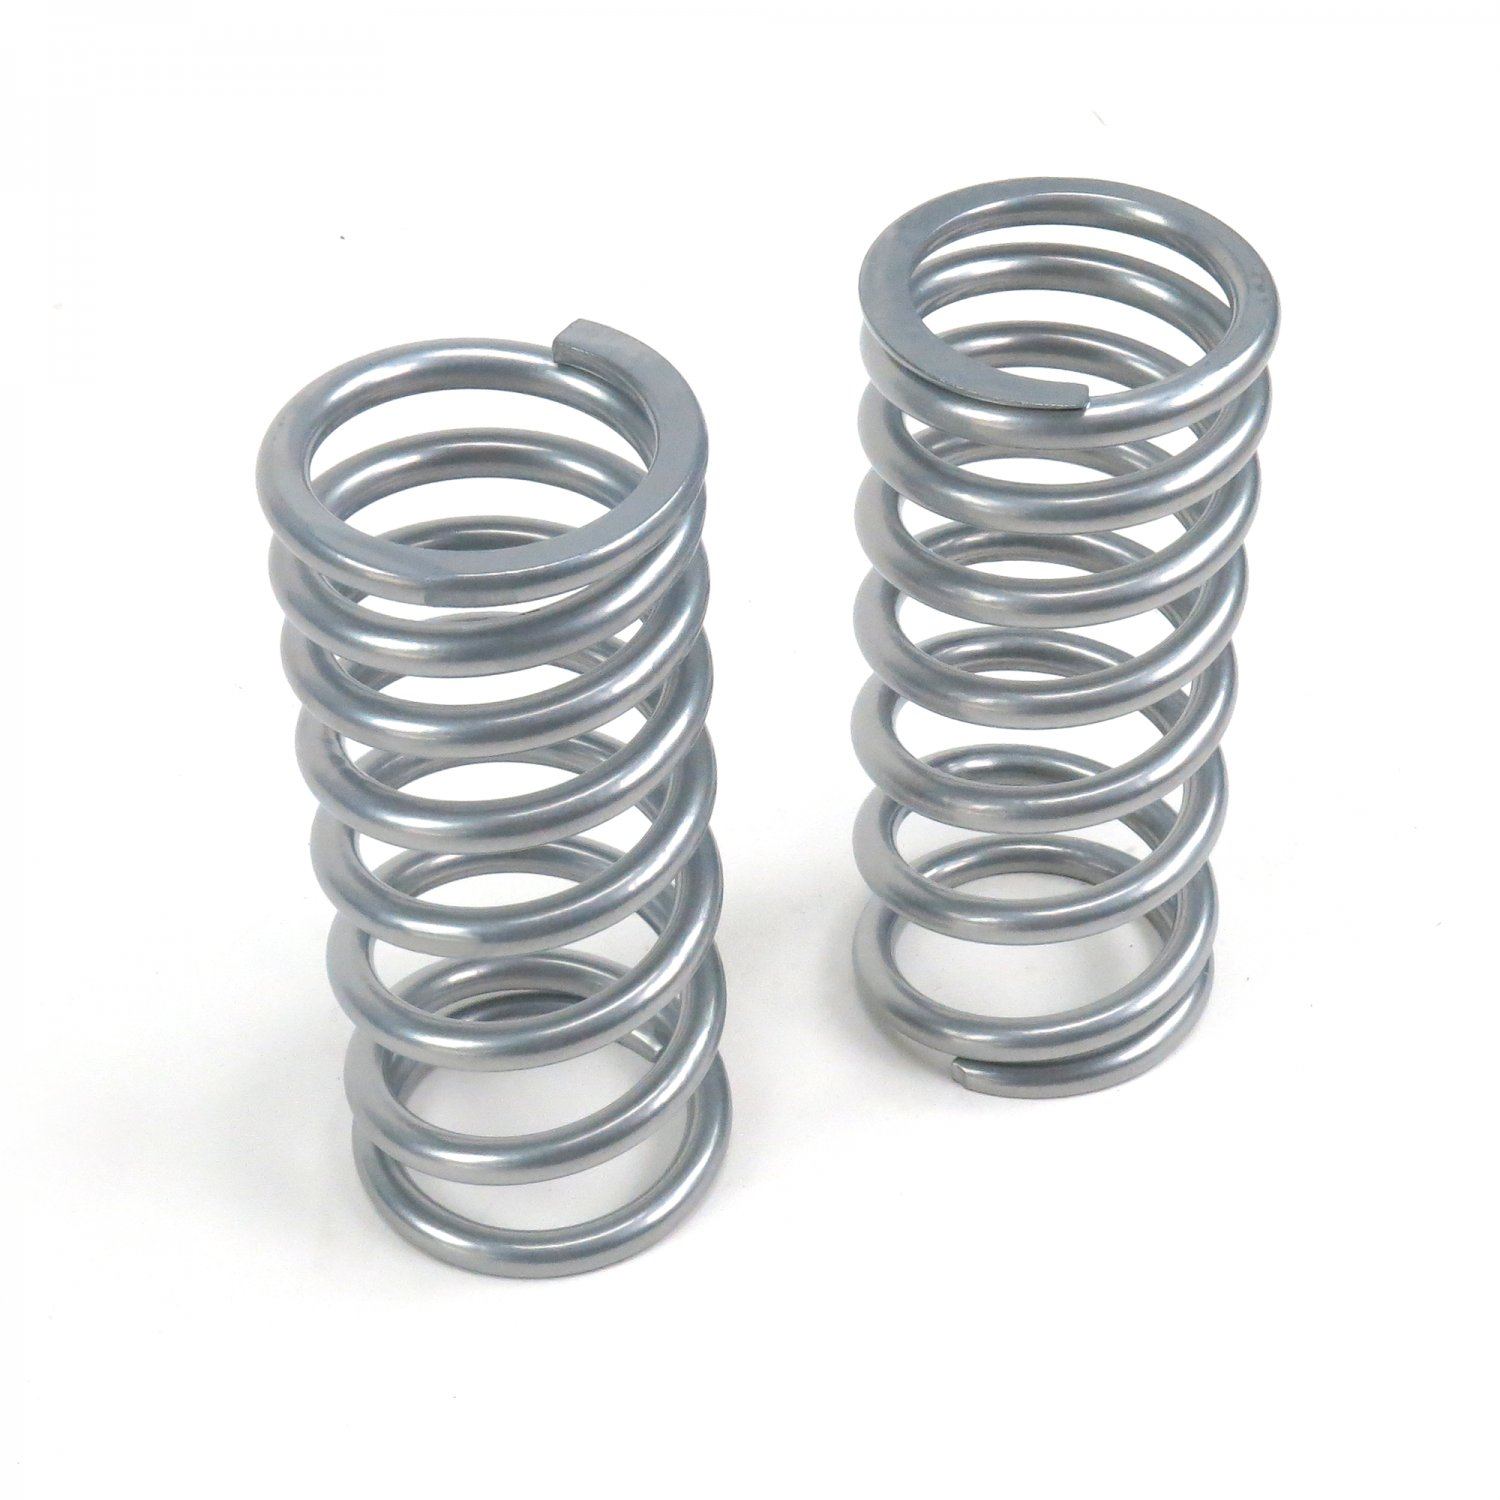 180-200lbs Progressive 185mm Tall  Coil Over Spring Set for 273 shock g force